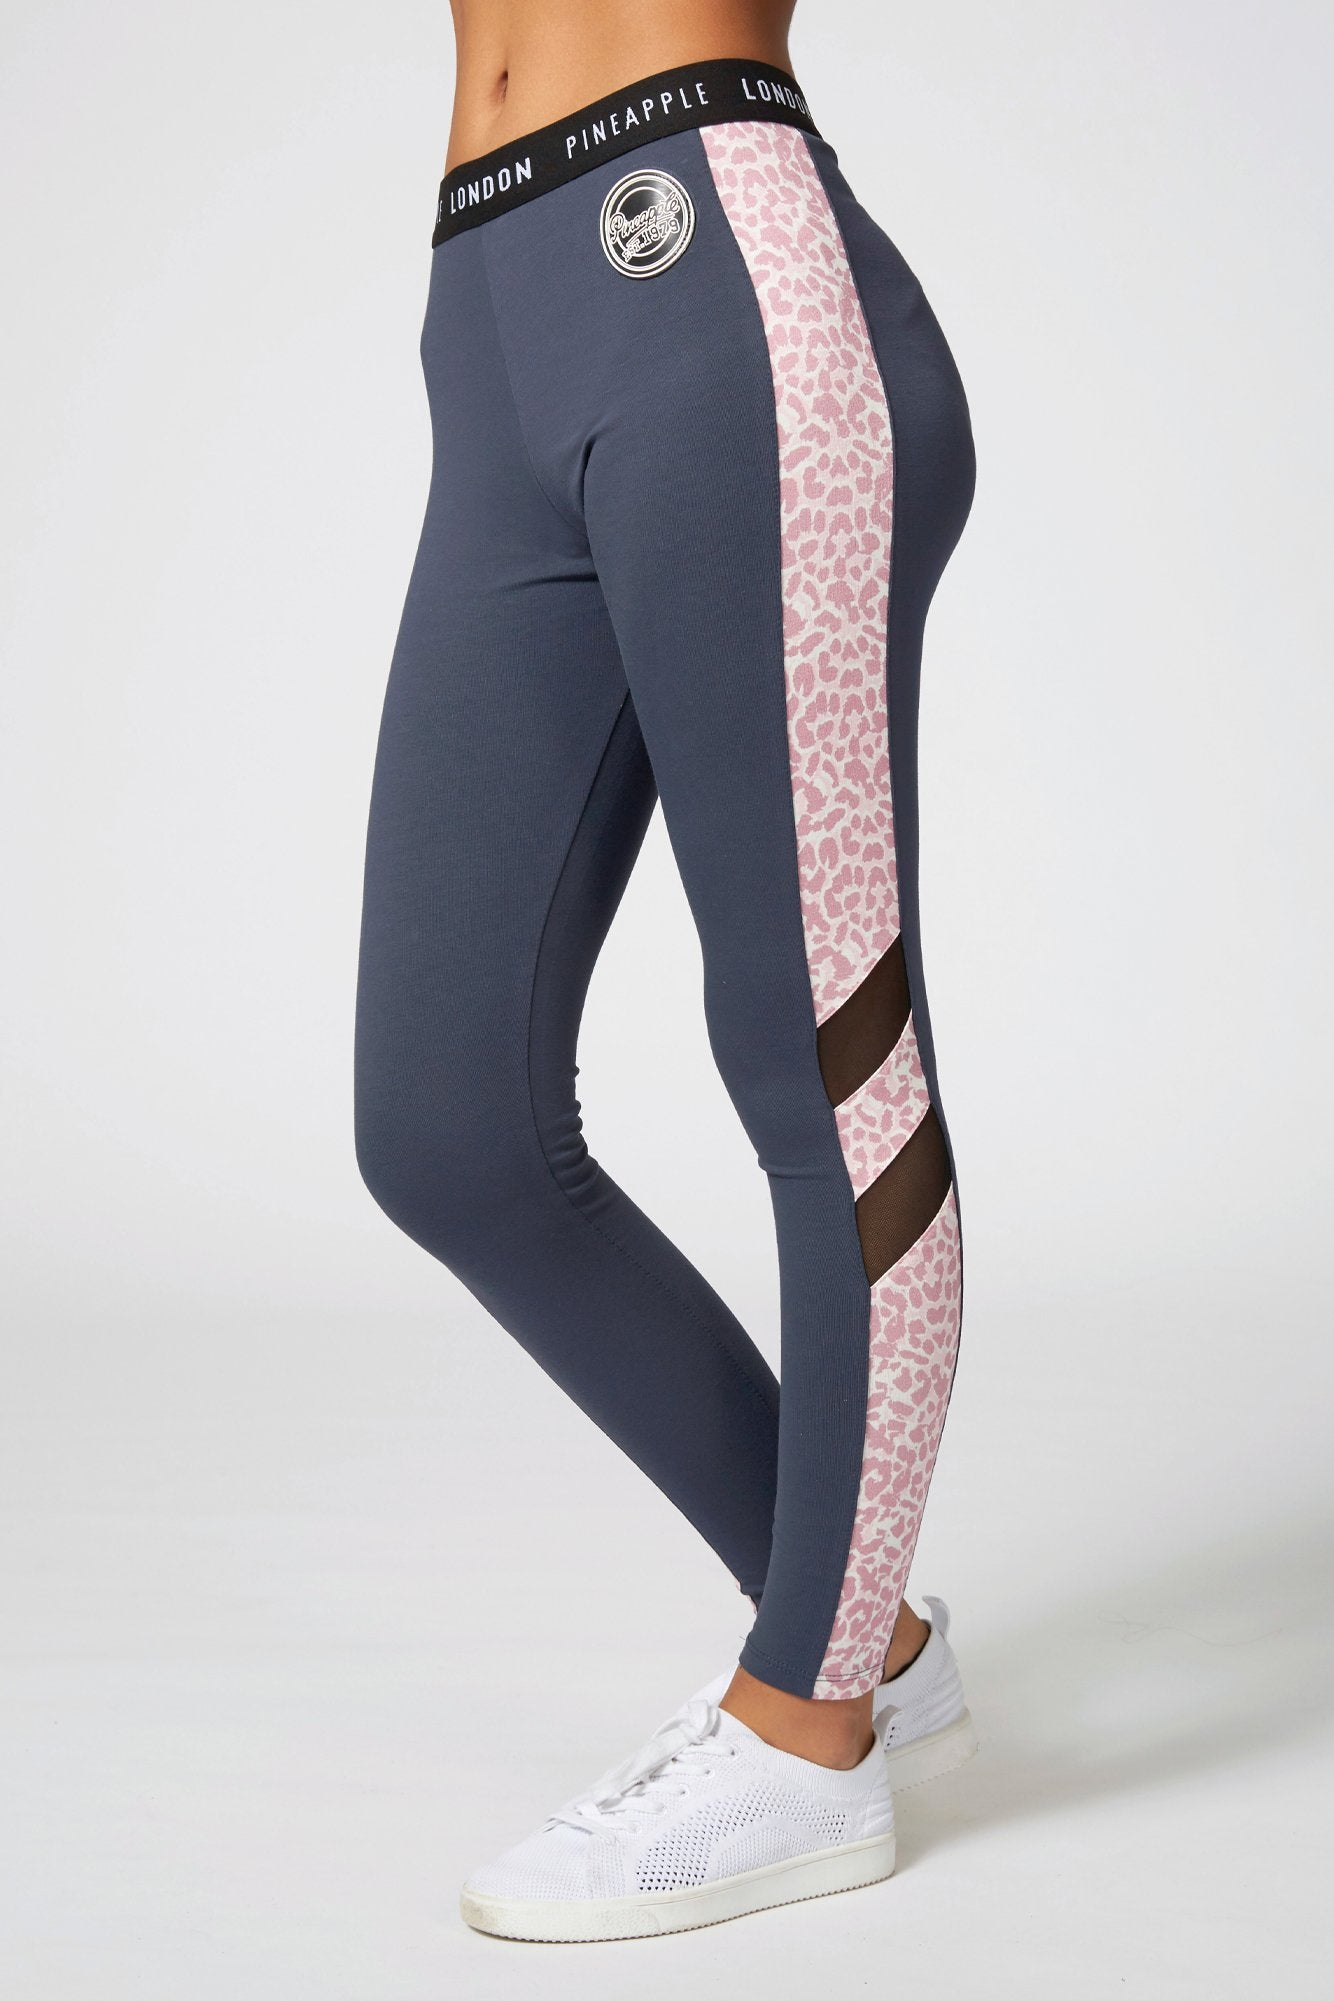 Jacquard Mesh Panel Leggings